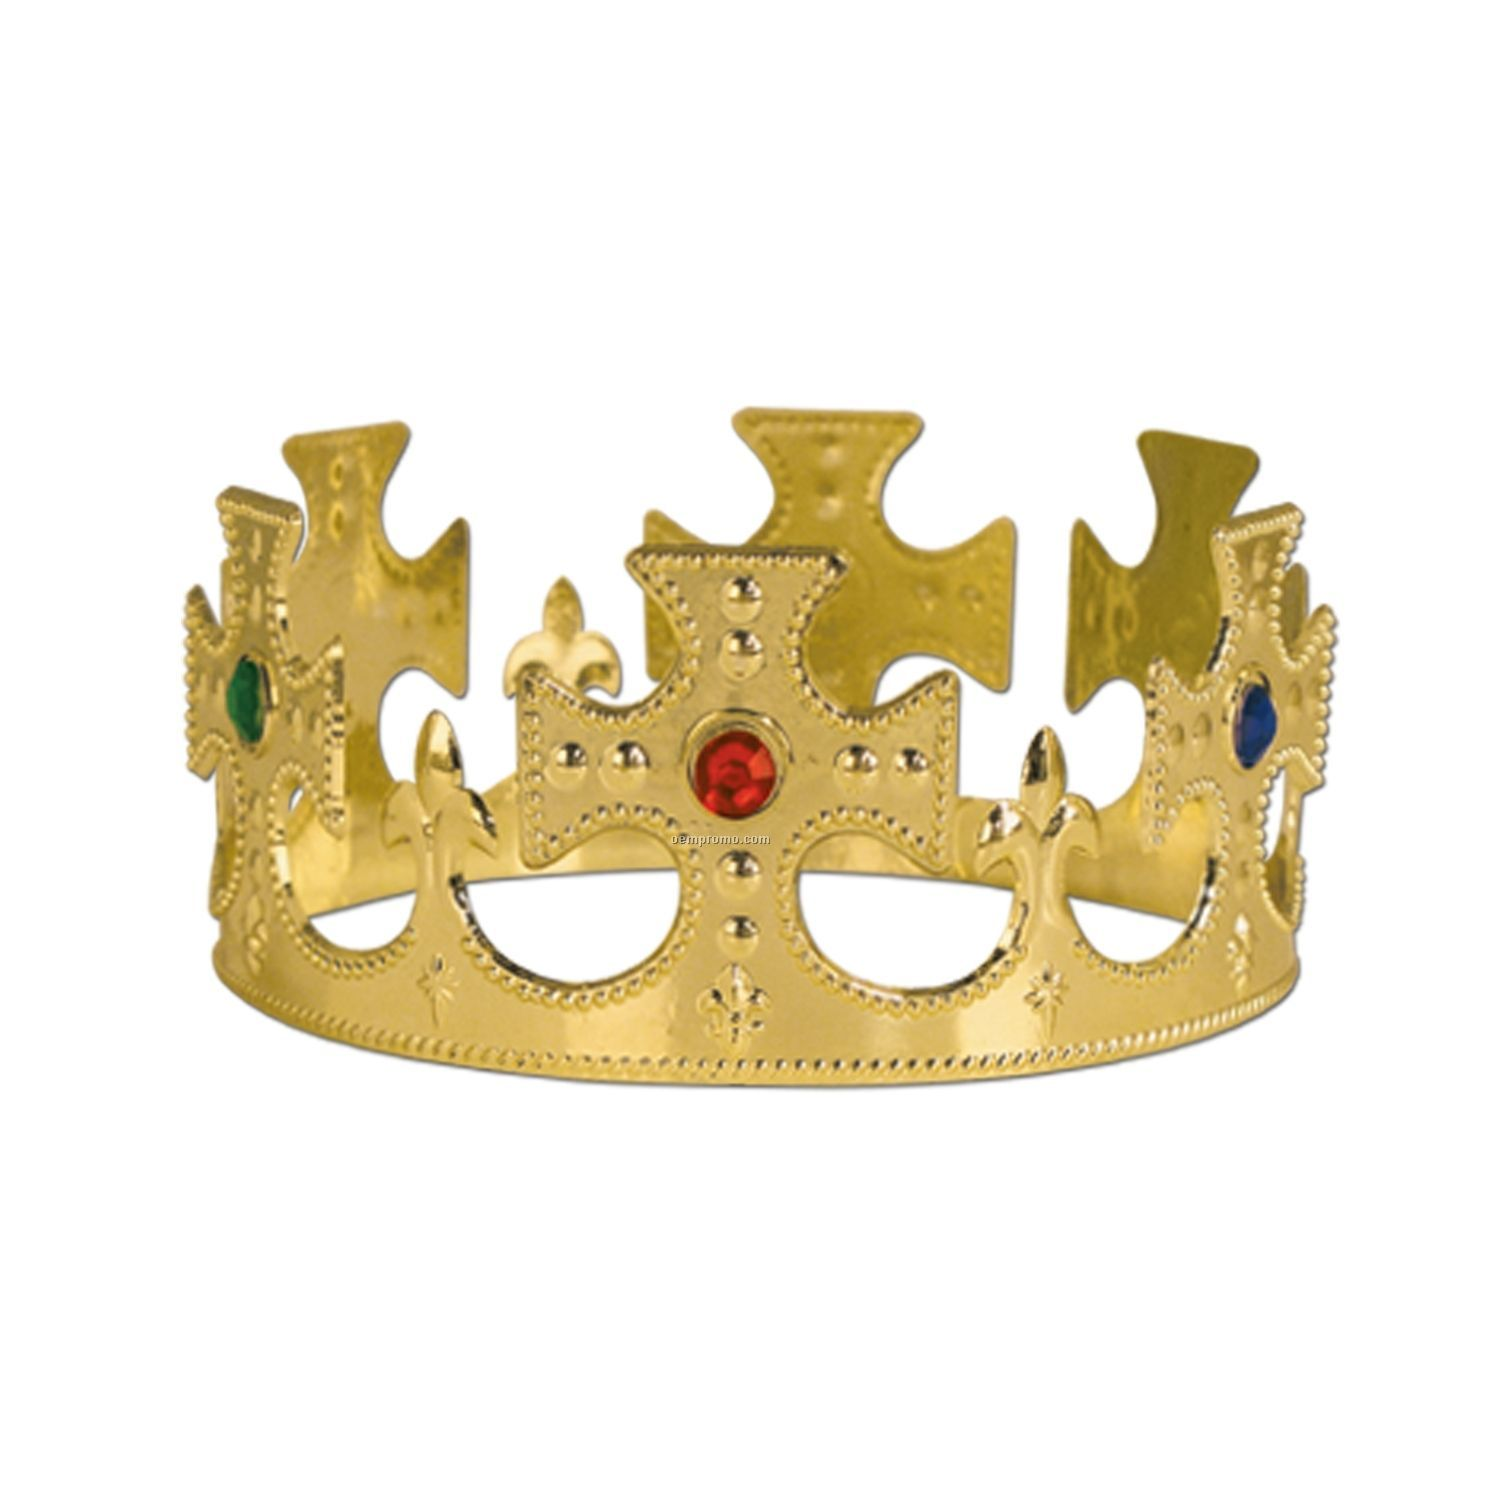 ... Jeweled Kings Crown,China Wholesale Plastic Jeweled Kings Crown